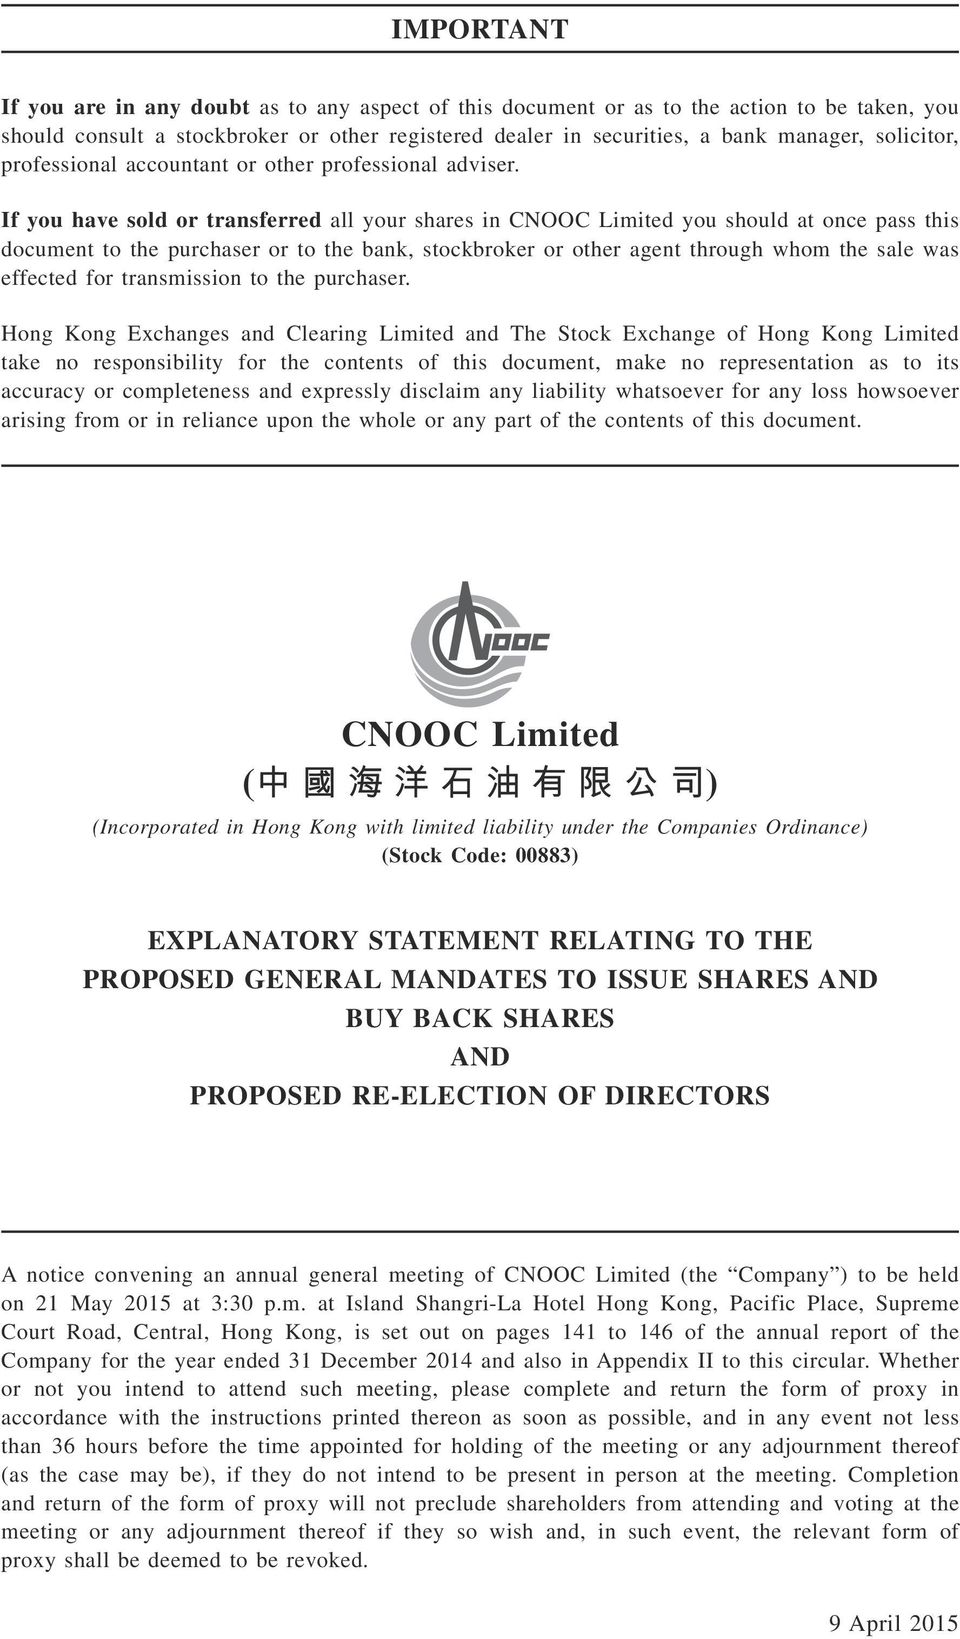 If you have sold or transferred all your shares in CNOOC Limited you should at once pass this document to the purchaser or to the bank, stockbroker or other agent through whom the sale was effected